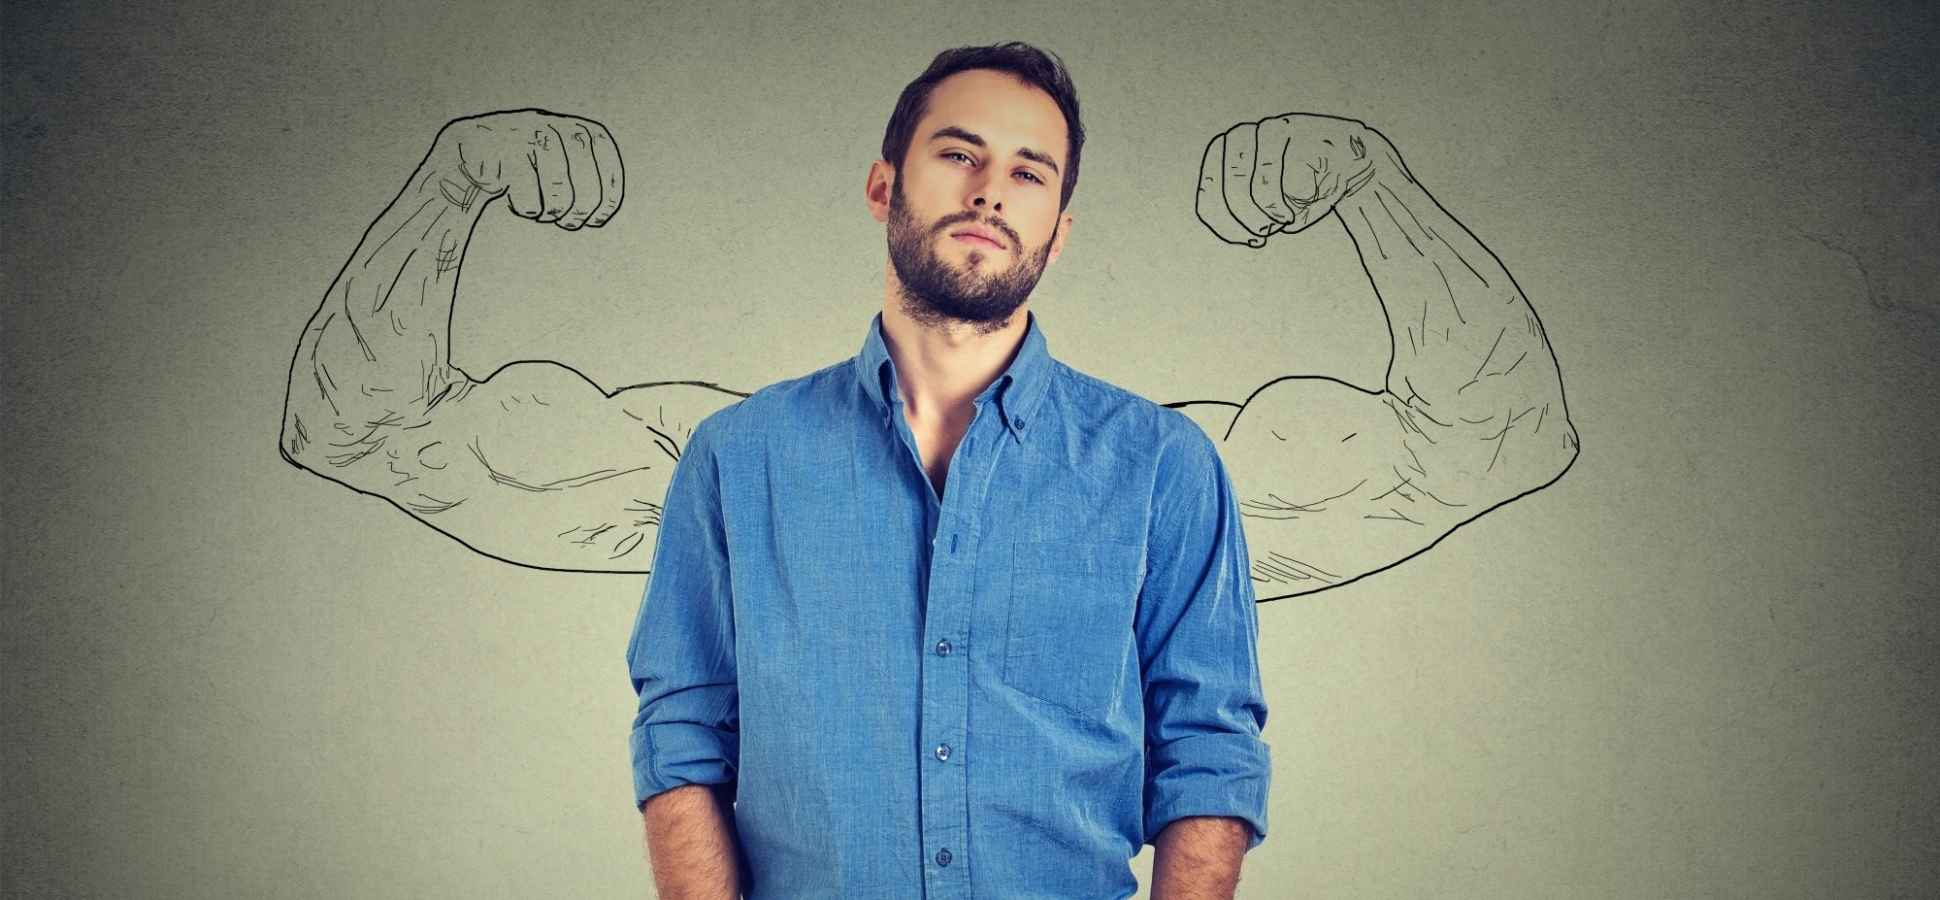 5 Ways Powerfully Confident People Gain Mental Strength